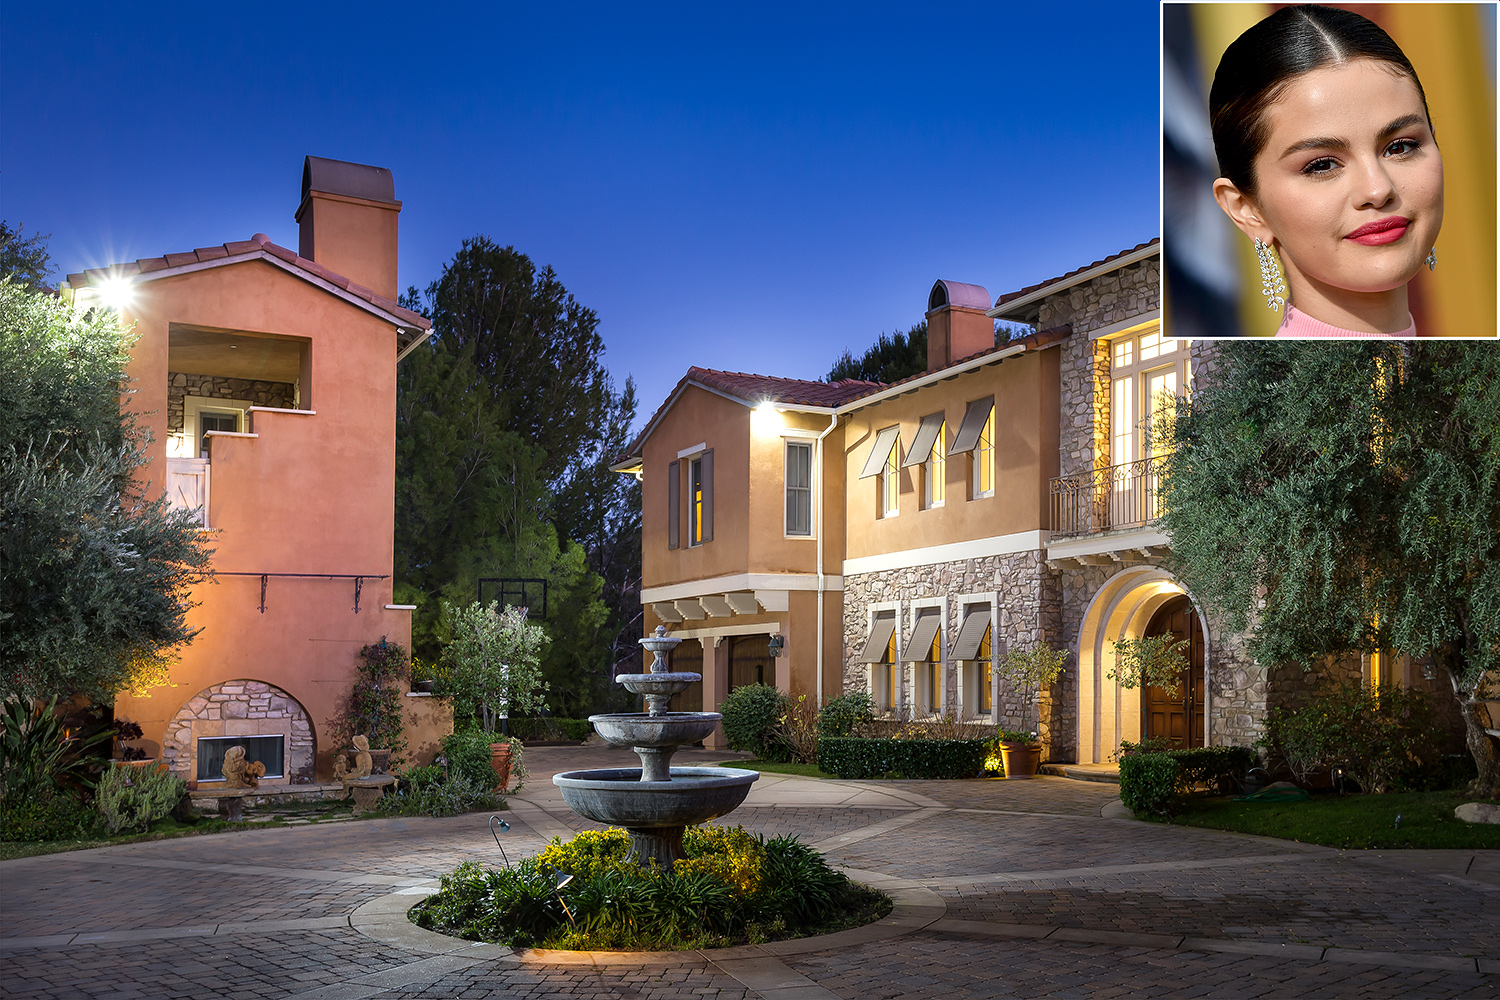 Selena Gomez's Former Home for Sale